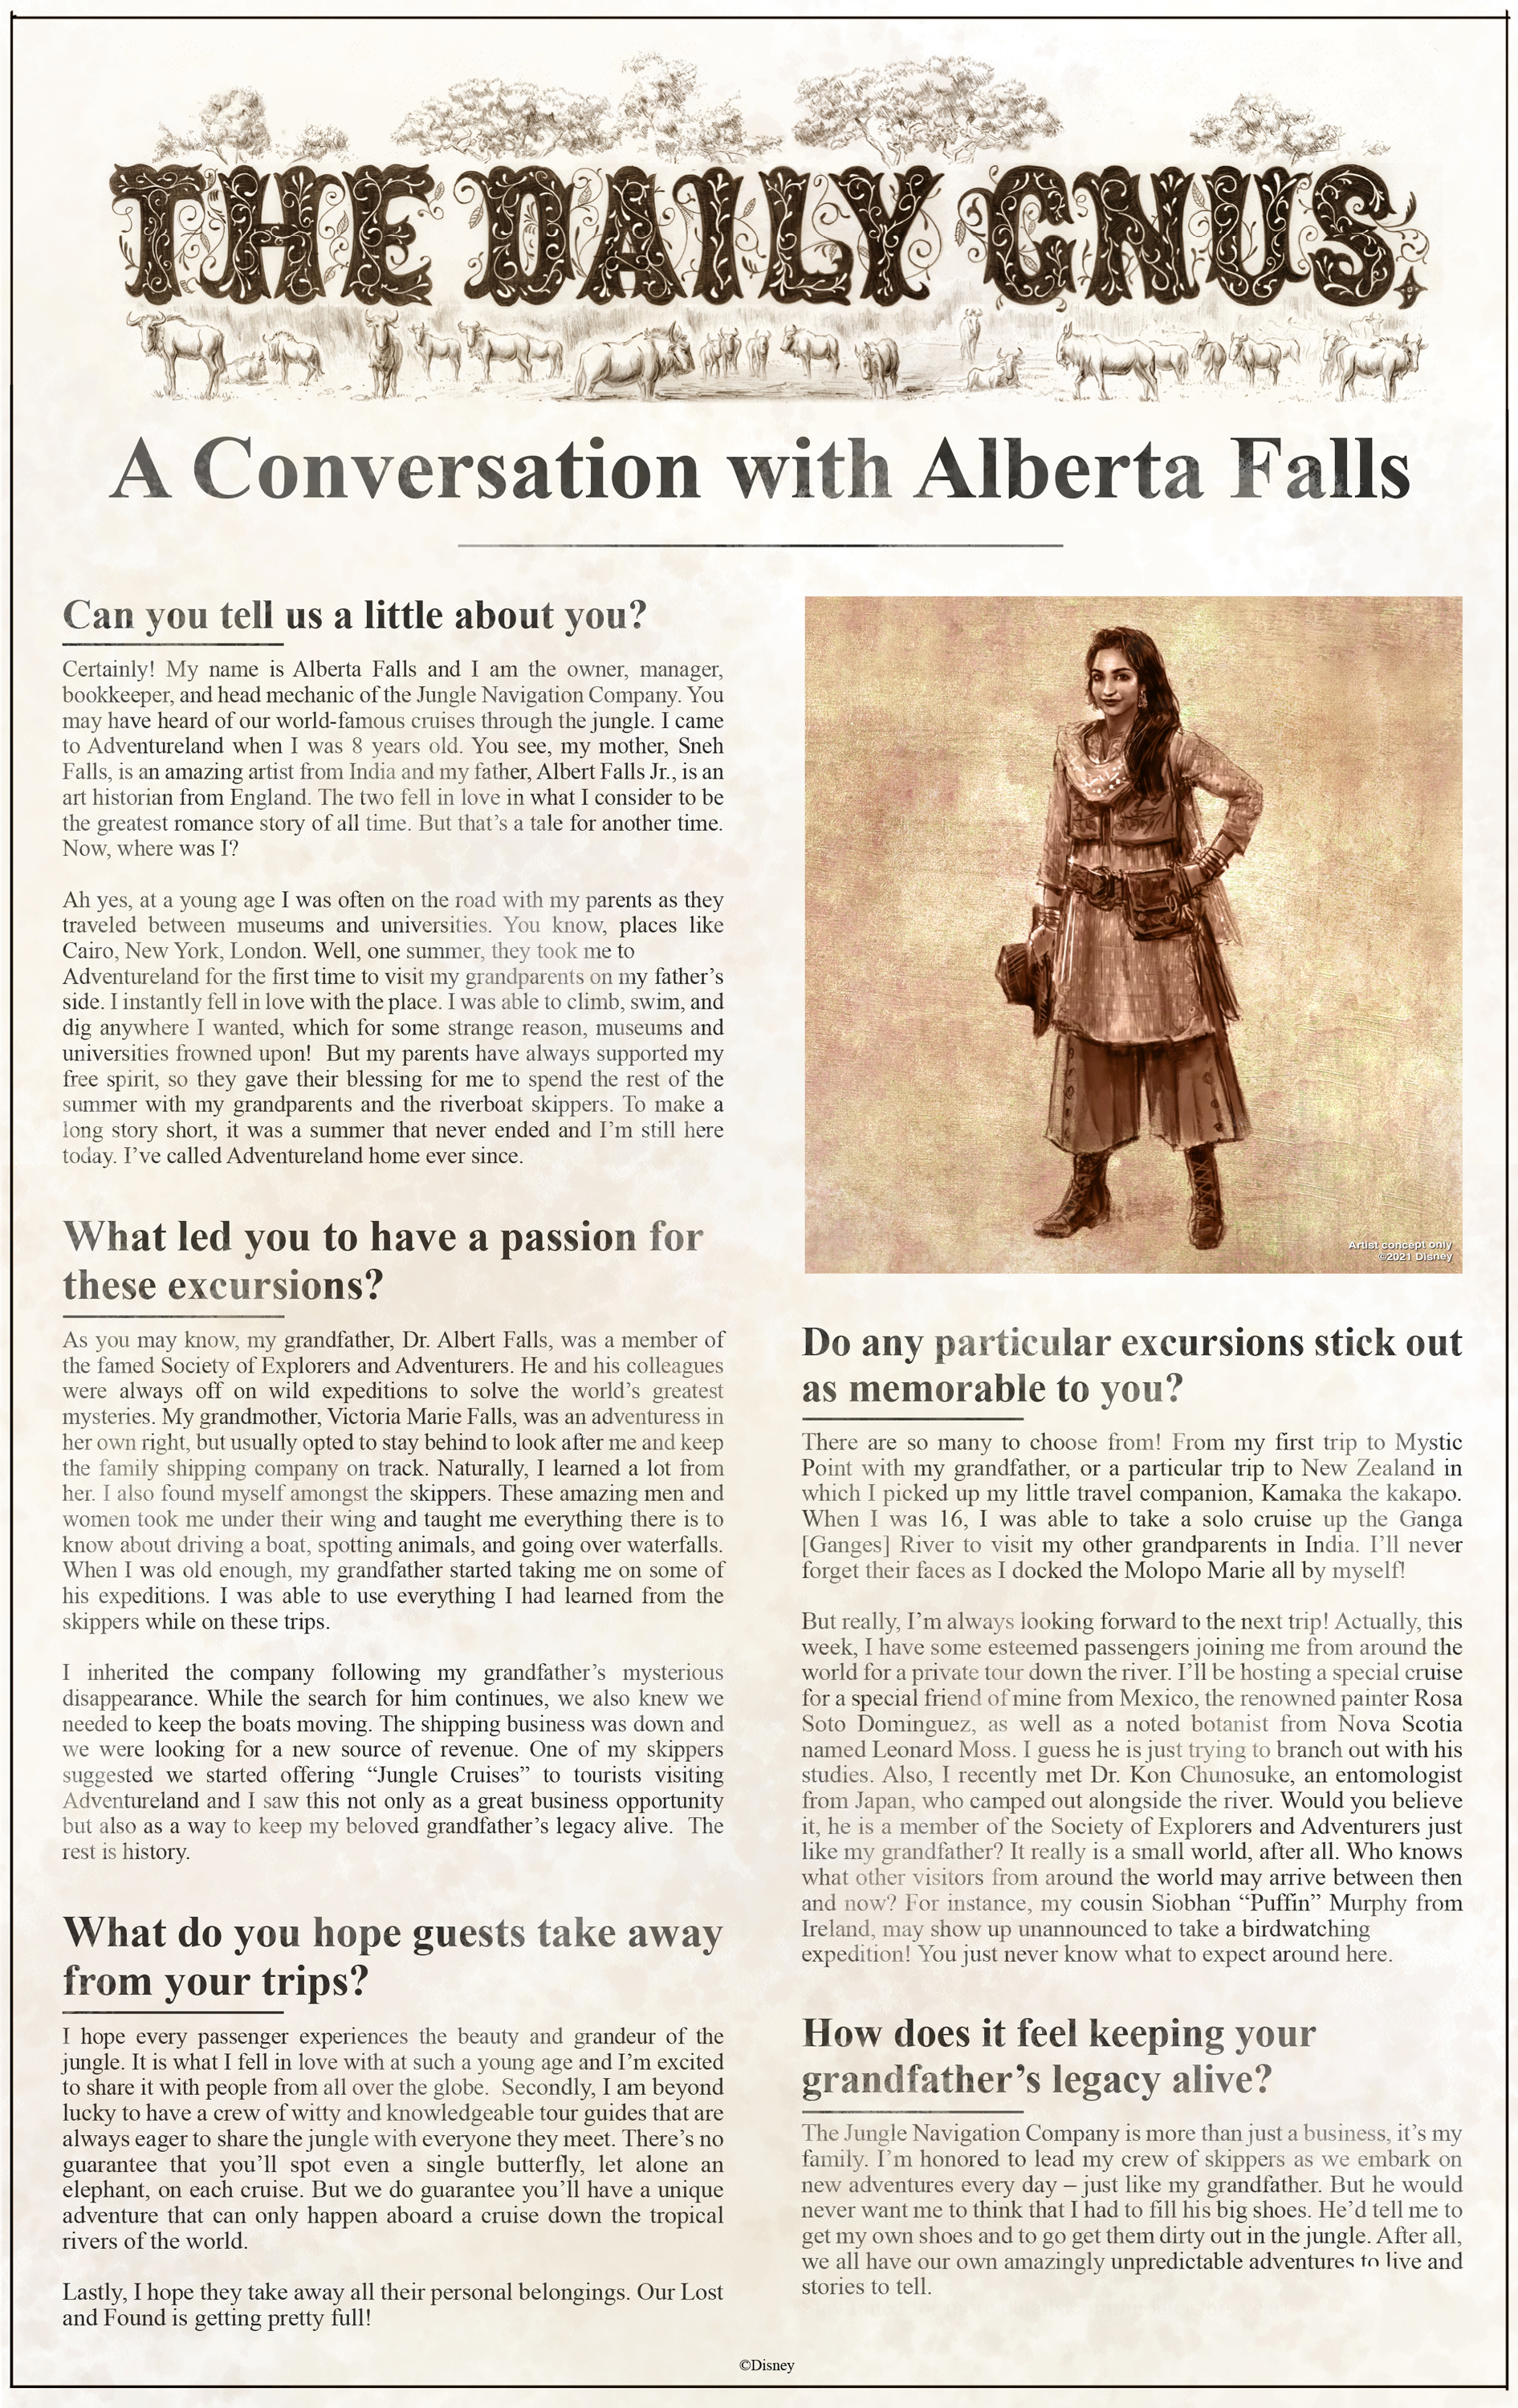 A conversation with Alberta Falls